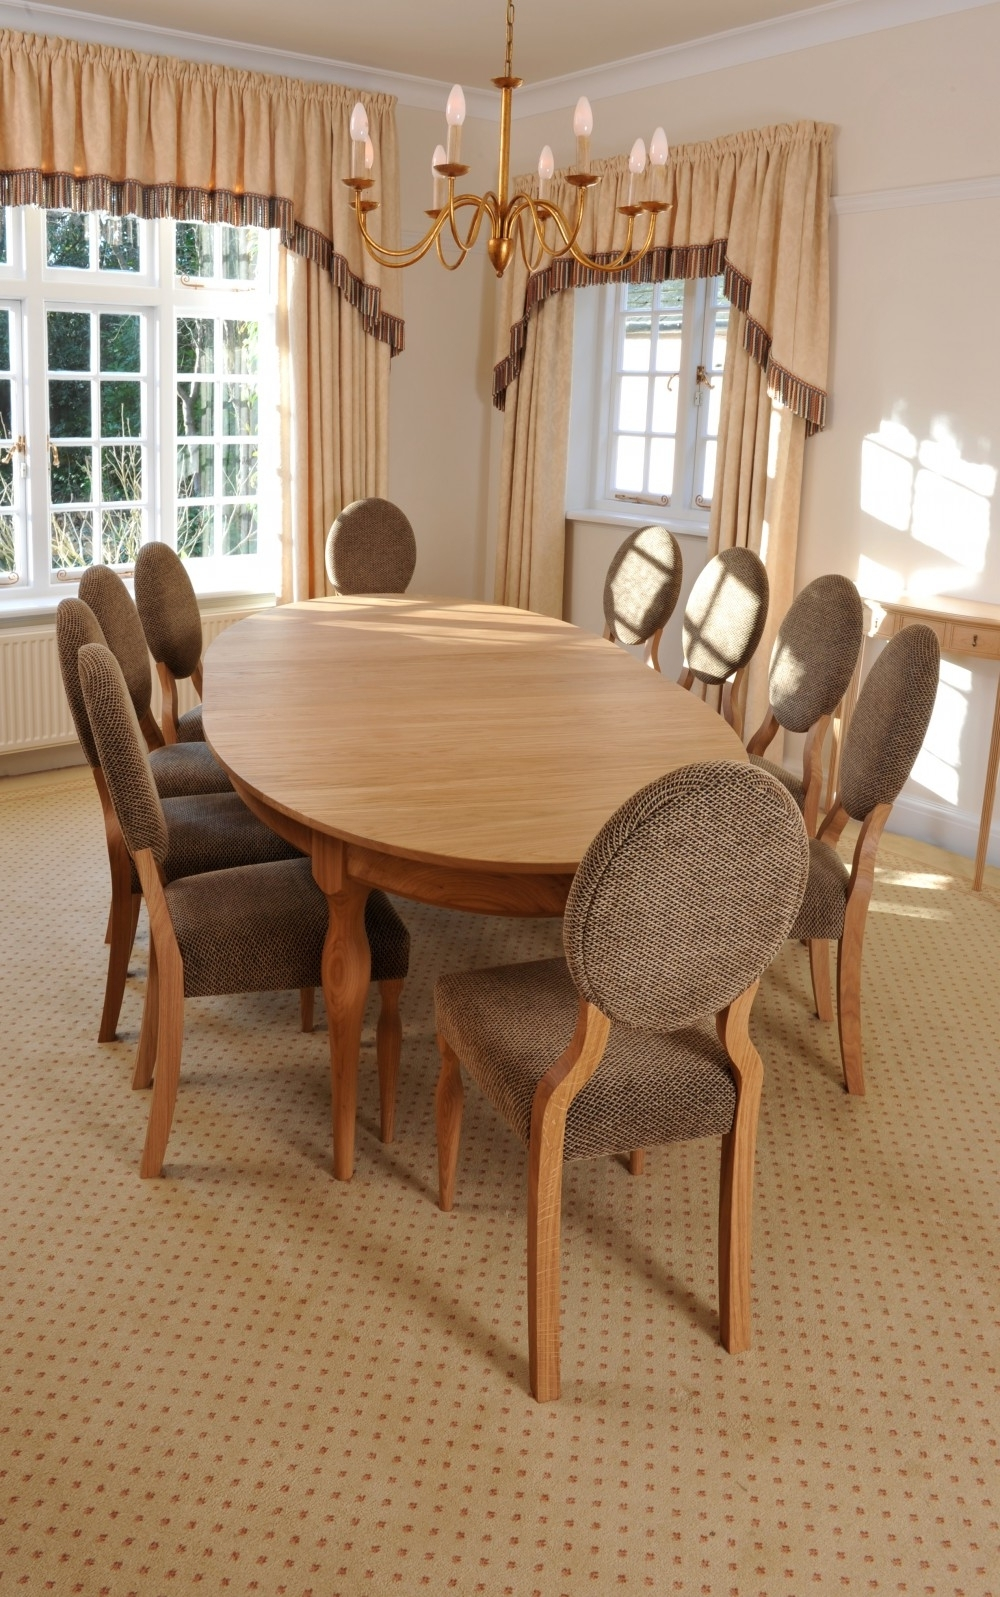 Oak Dining Suite In Widely Used Pristine Oak Dining Suite – Stewart Linford (View 16 of 25)